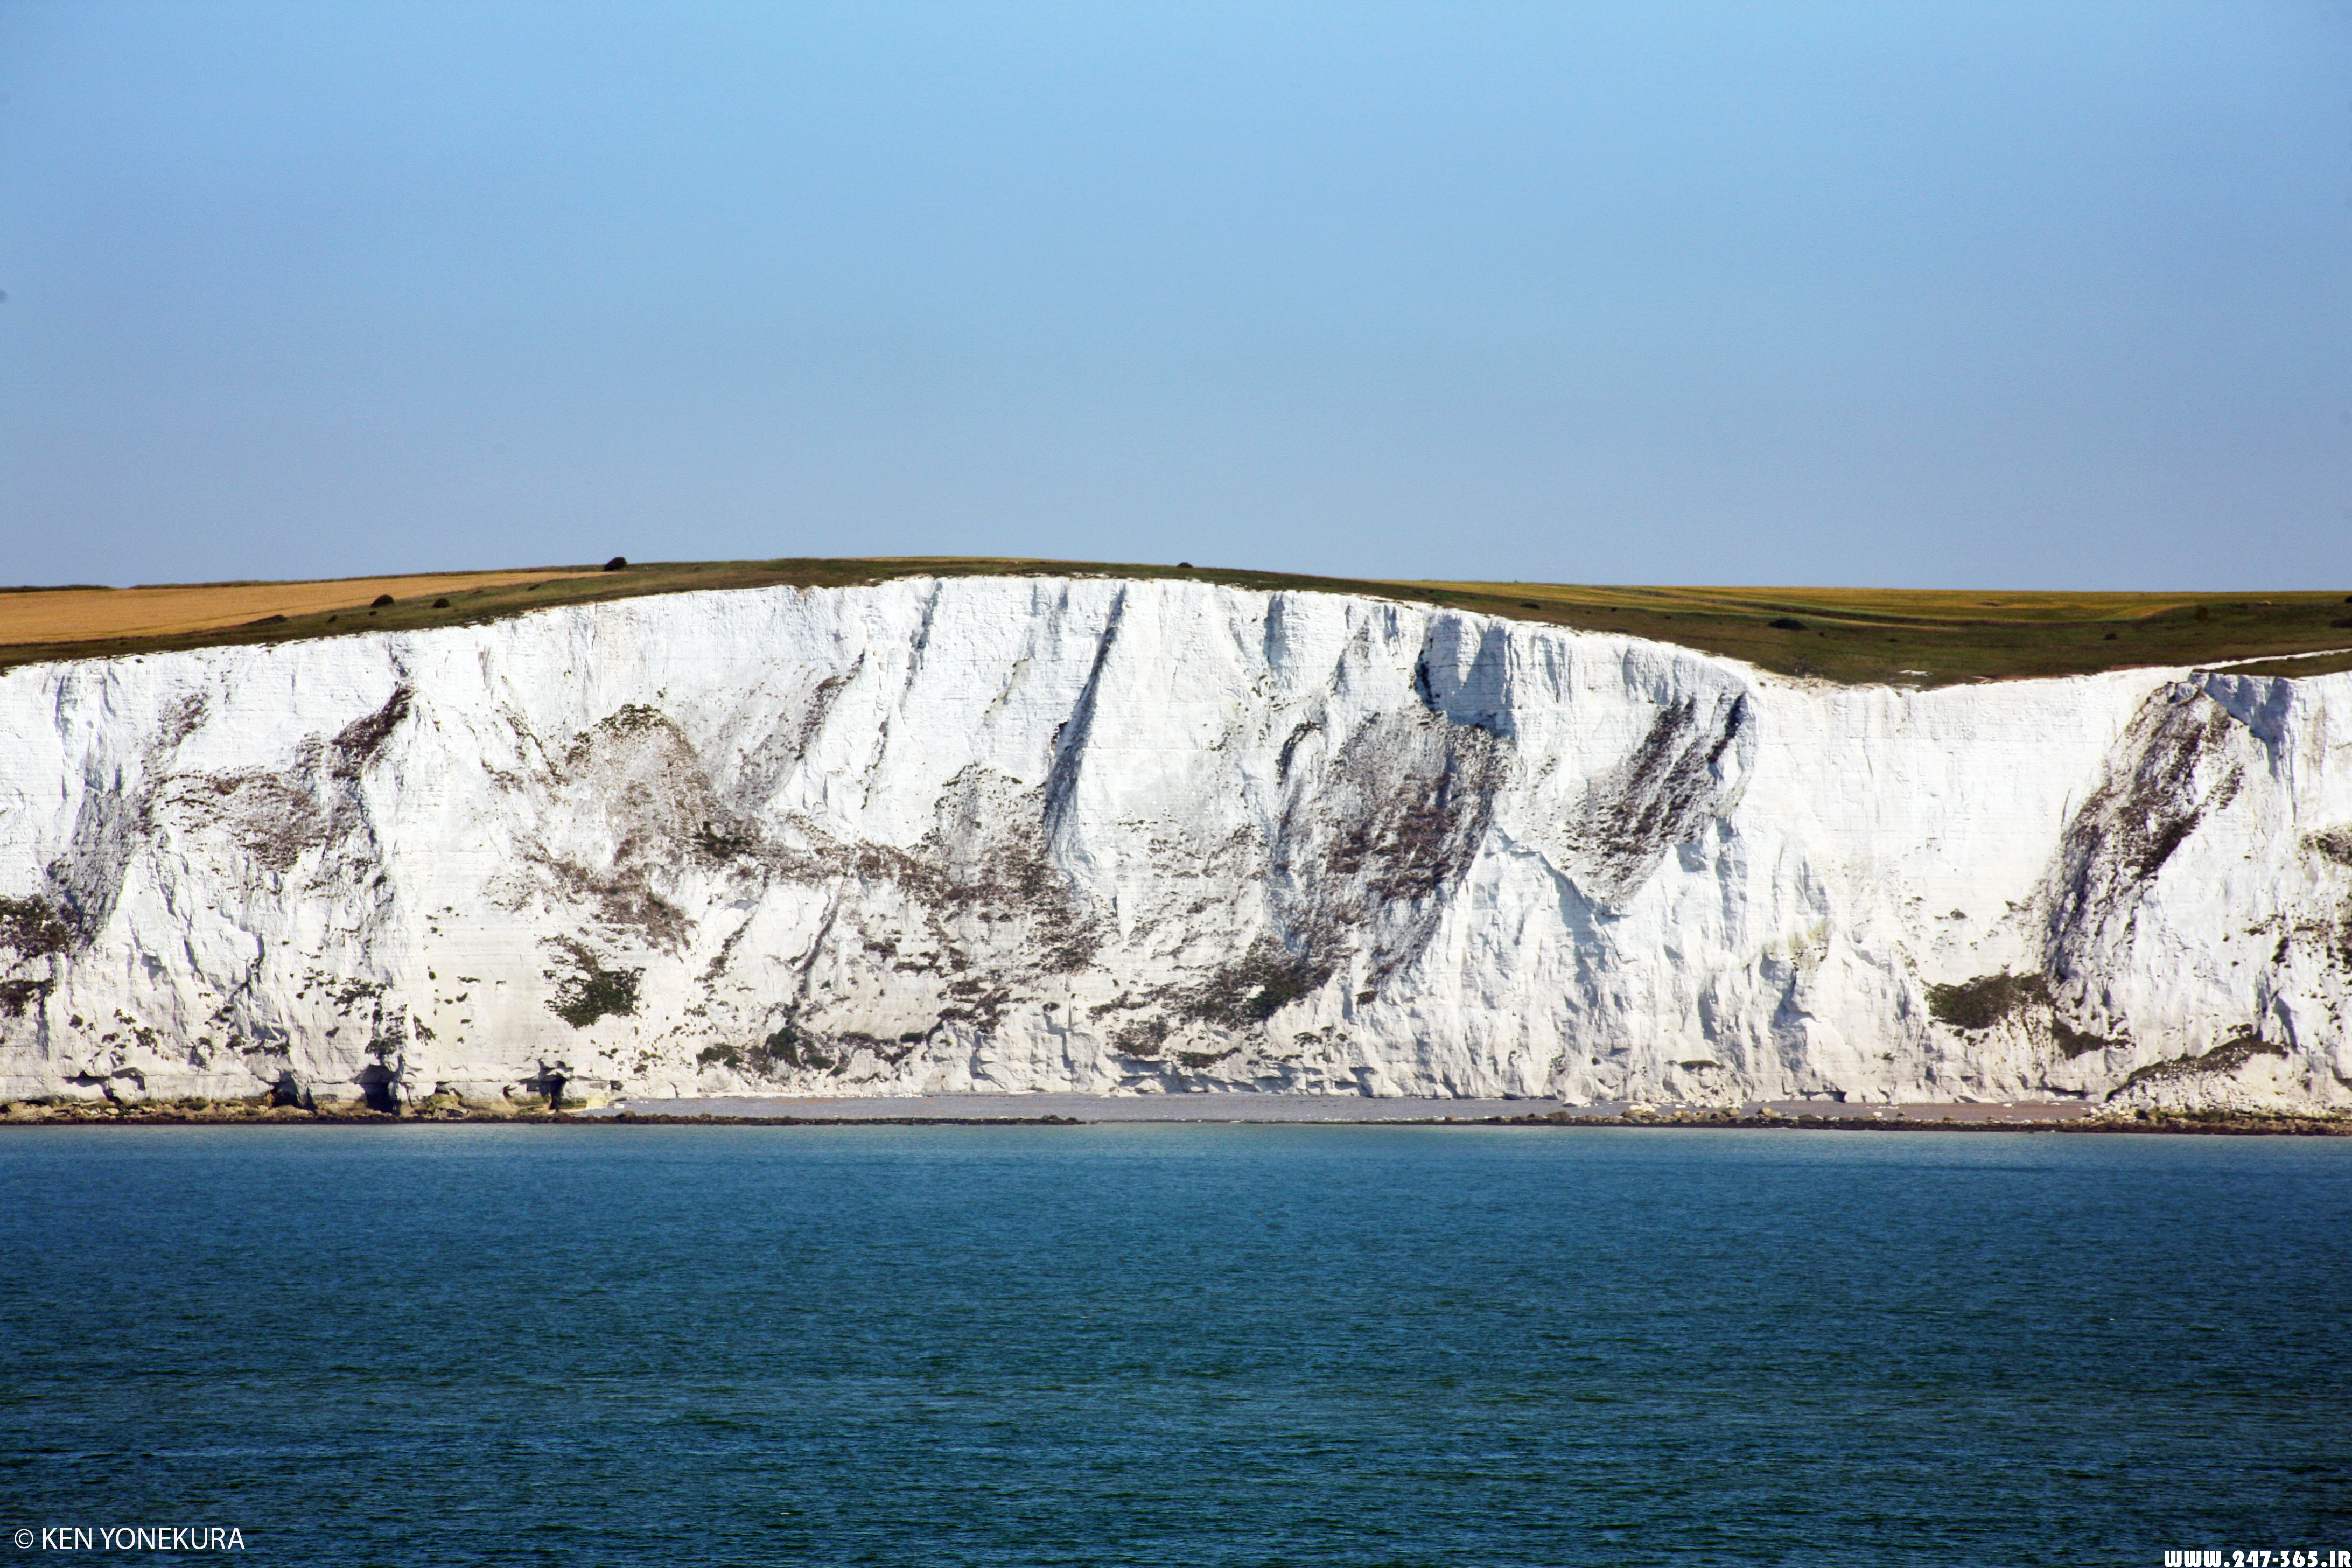 http://dl.247-365.ir/pic/tak_ax/White_Cliffs_of_Dover.jpg